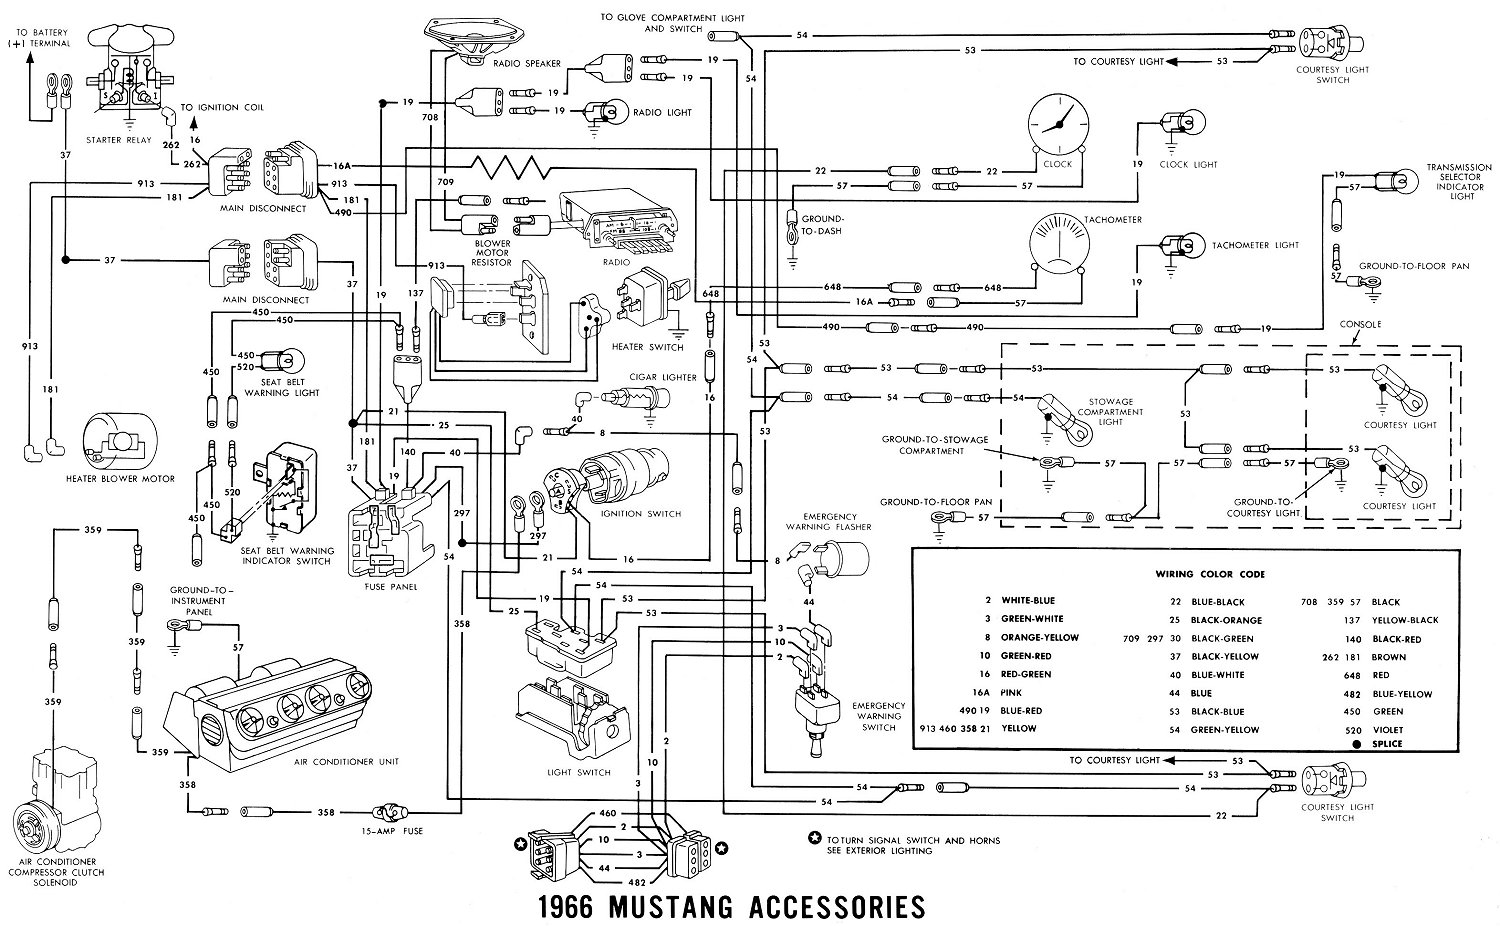 66acces1 1966 mustang wiring diagrams average joe restoration 1966 mustang radio wiring diagram at bakdesigns.co